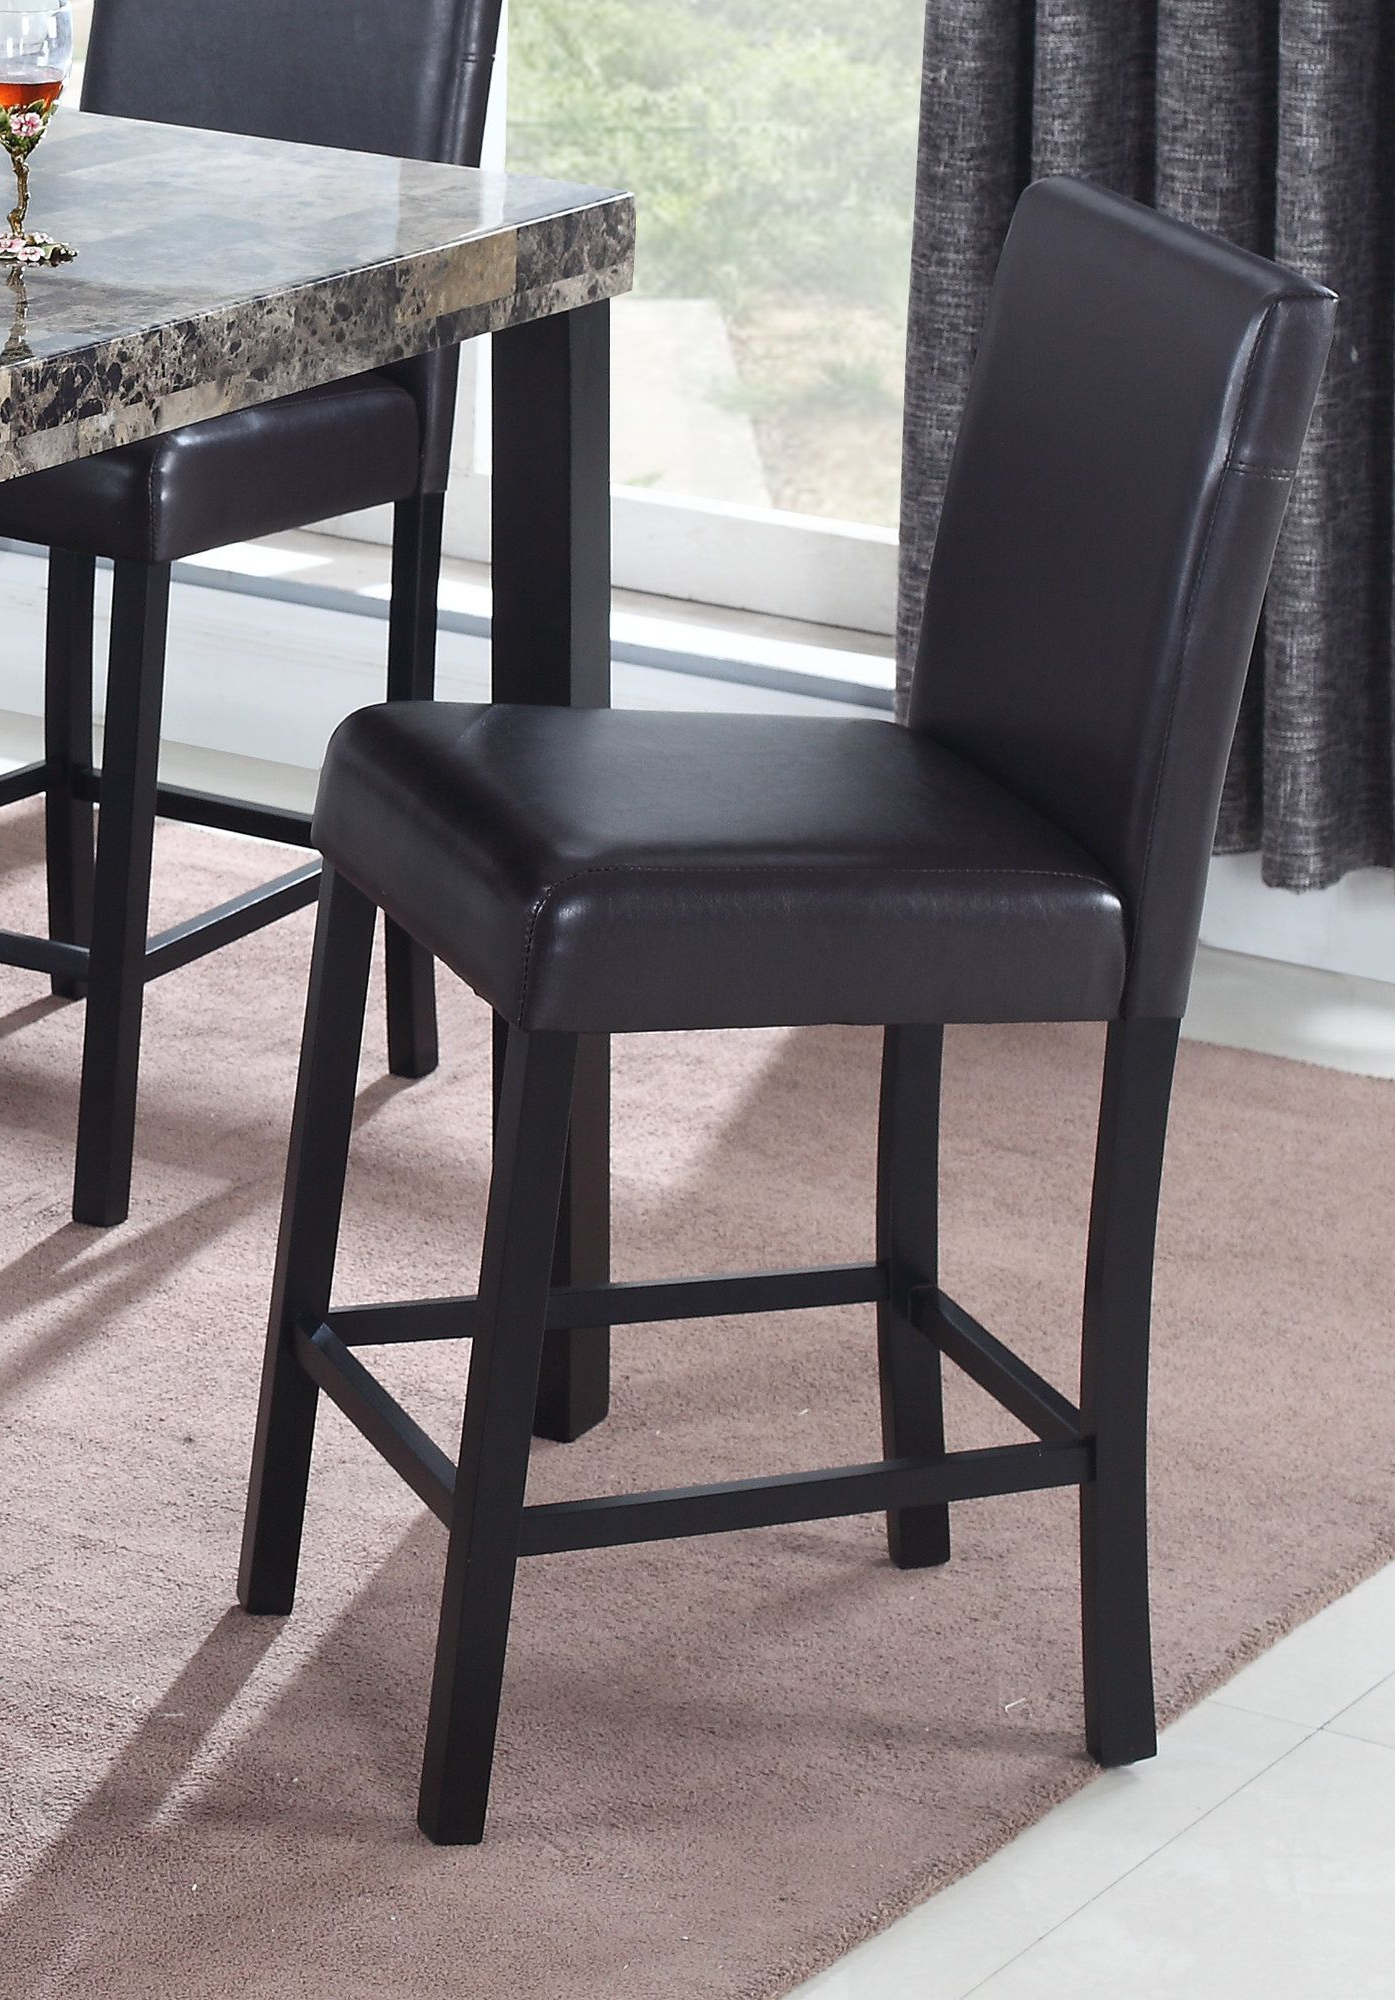 Counter Height Stools, Counter Stools, Stool In Popular Miskell 3 Piece Dining Sets (View 3 of 20)